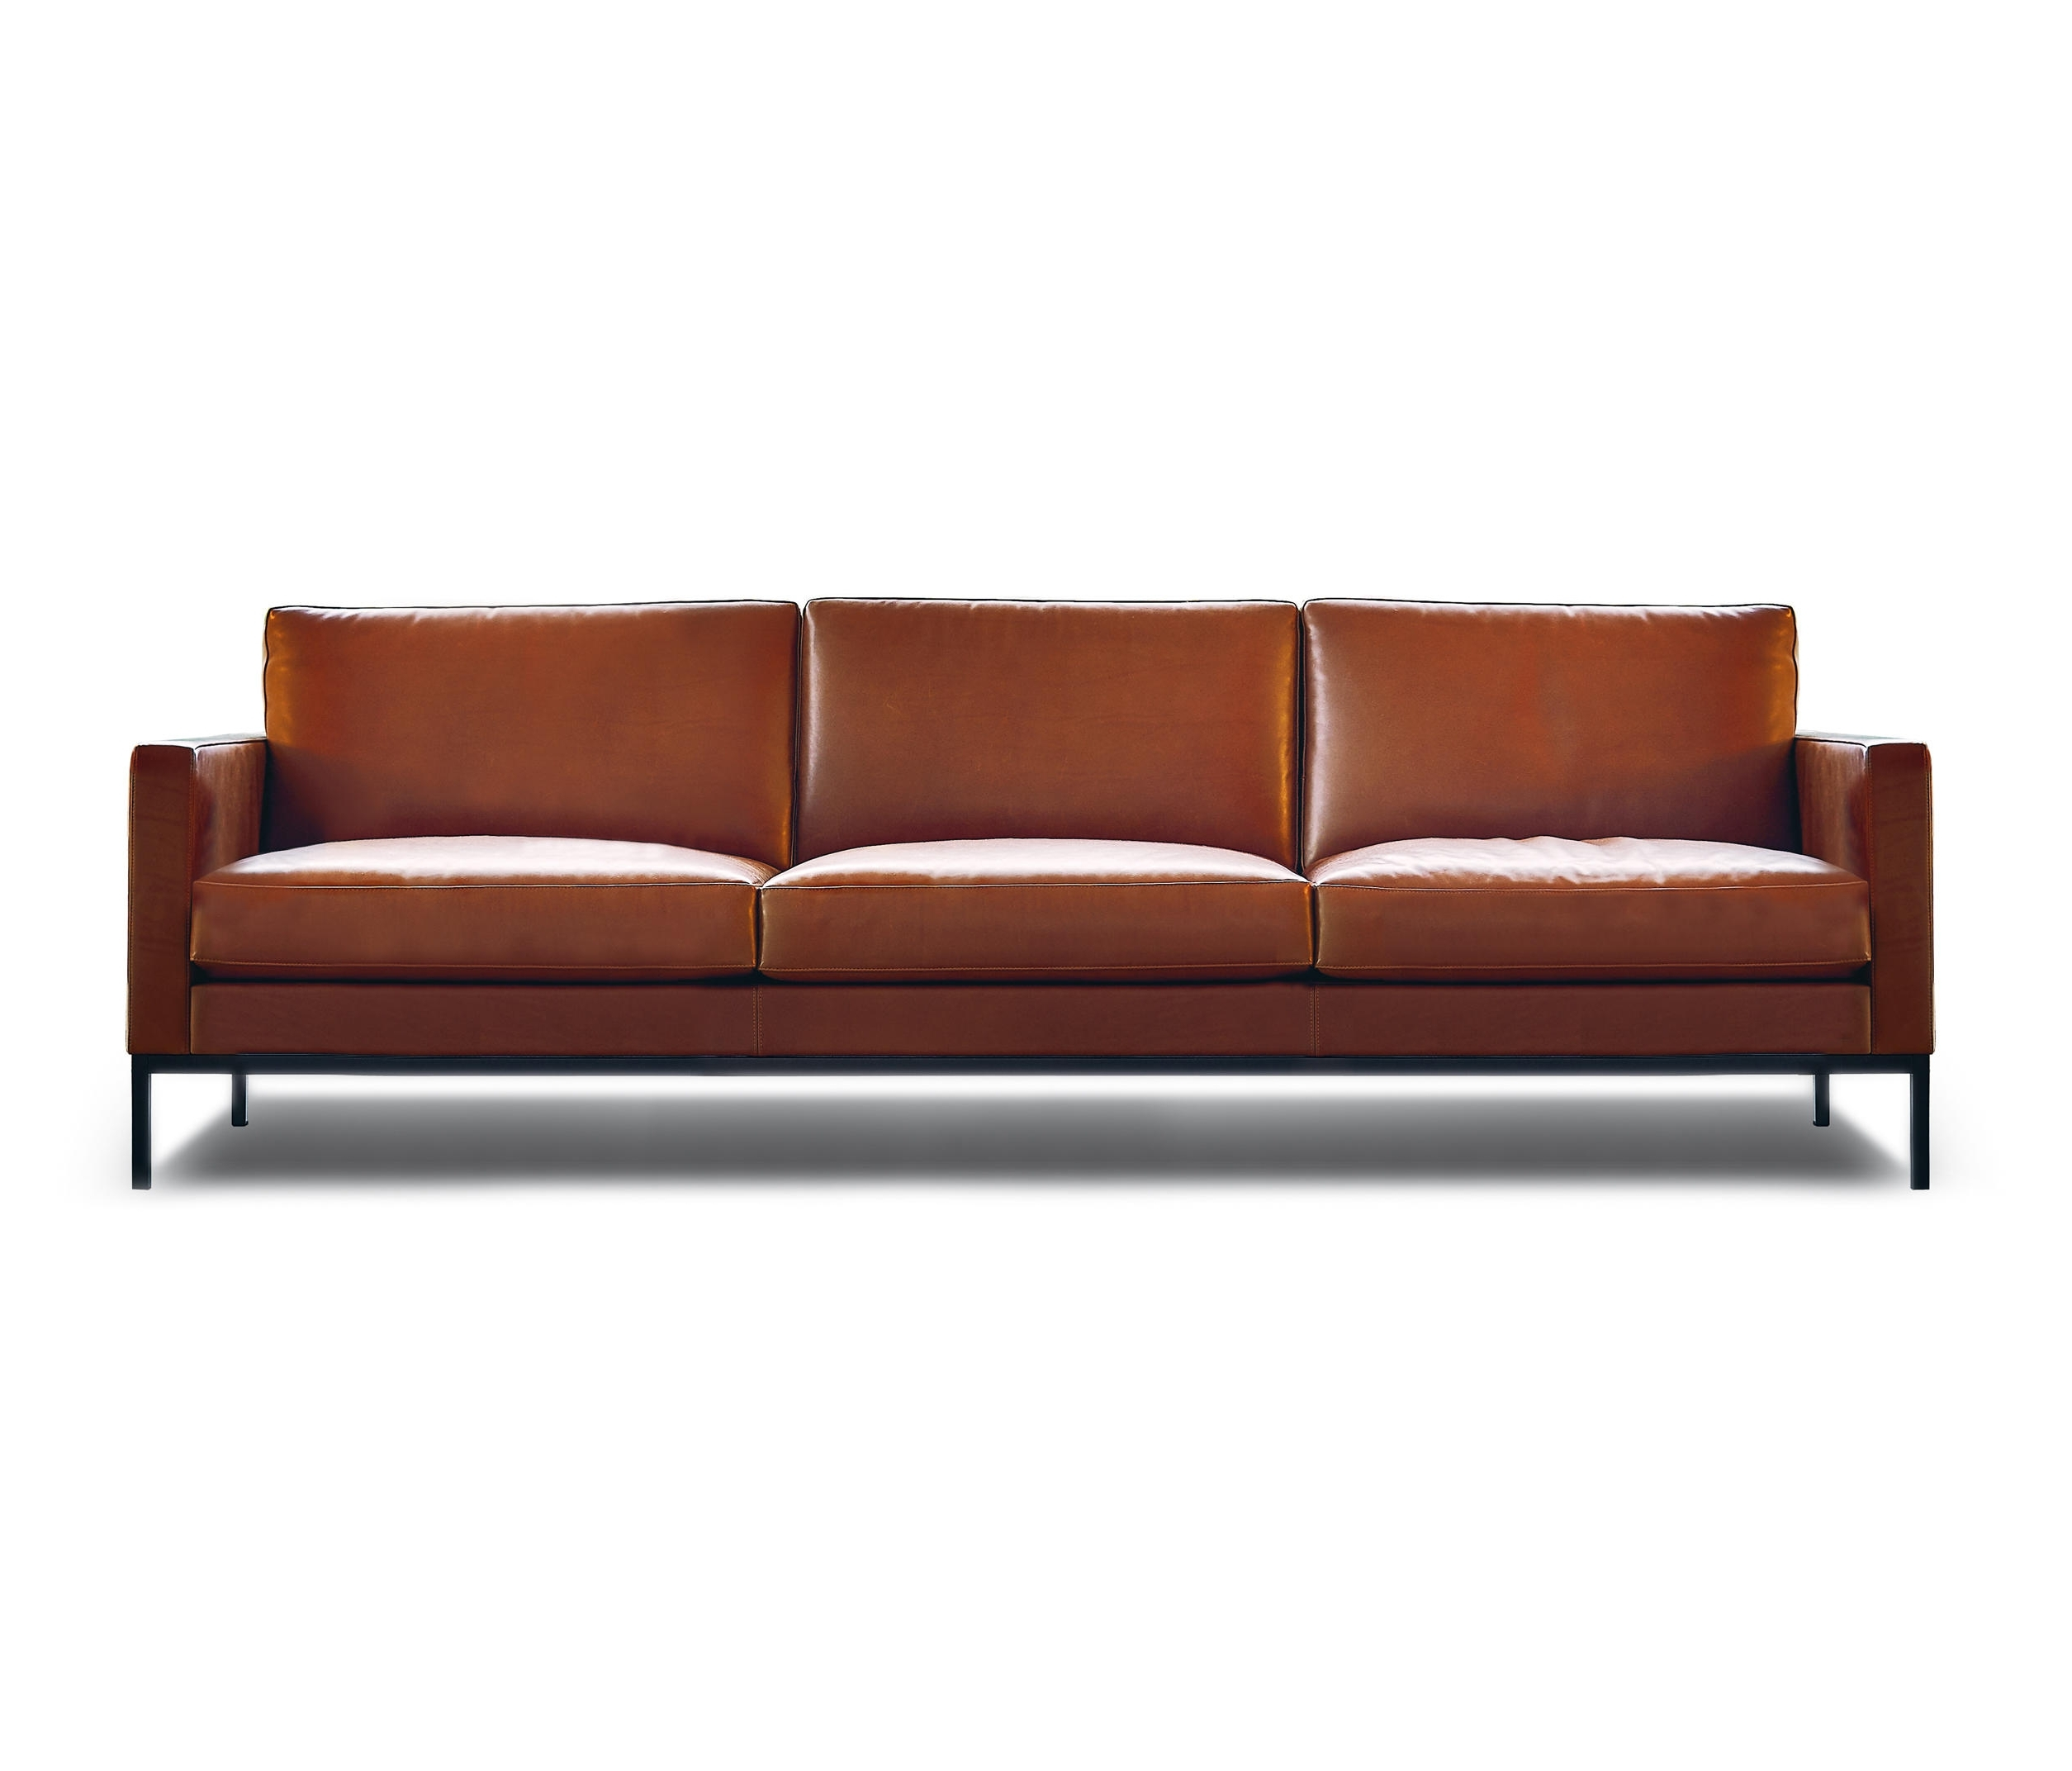 Florence Knoll Lounge 3 Seat Sofa – Lounge Sofas From Knoll With Widely Used Florence Knoll 3 Seater Sofas (View 4 of 15)